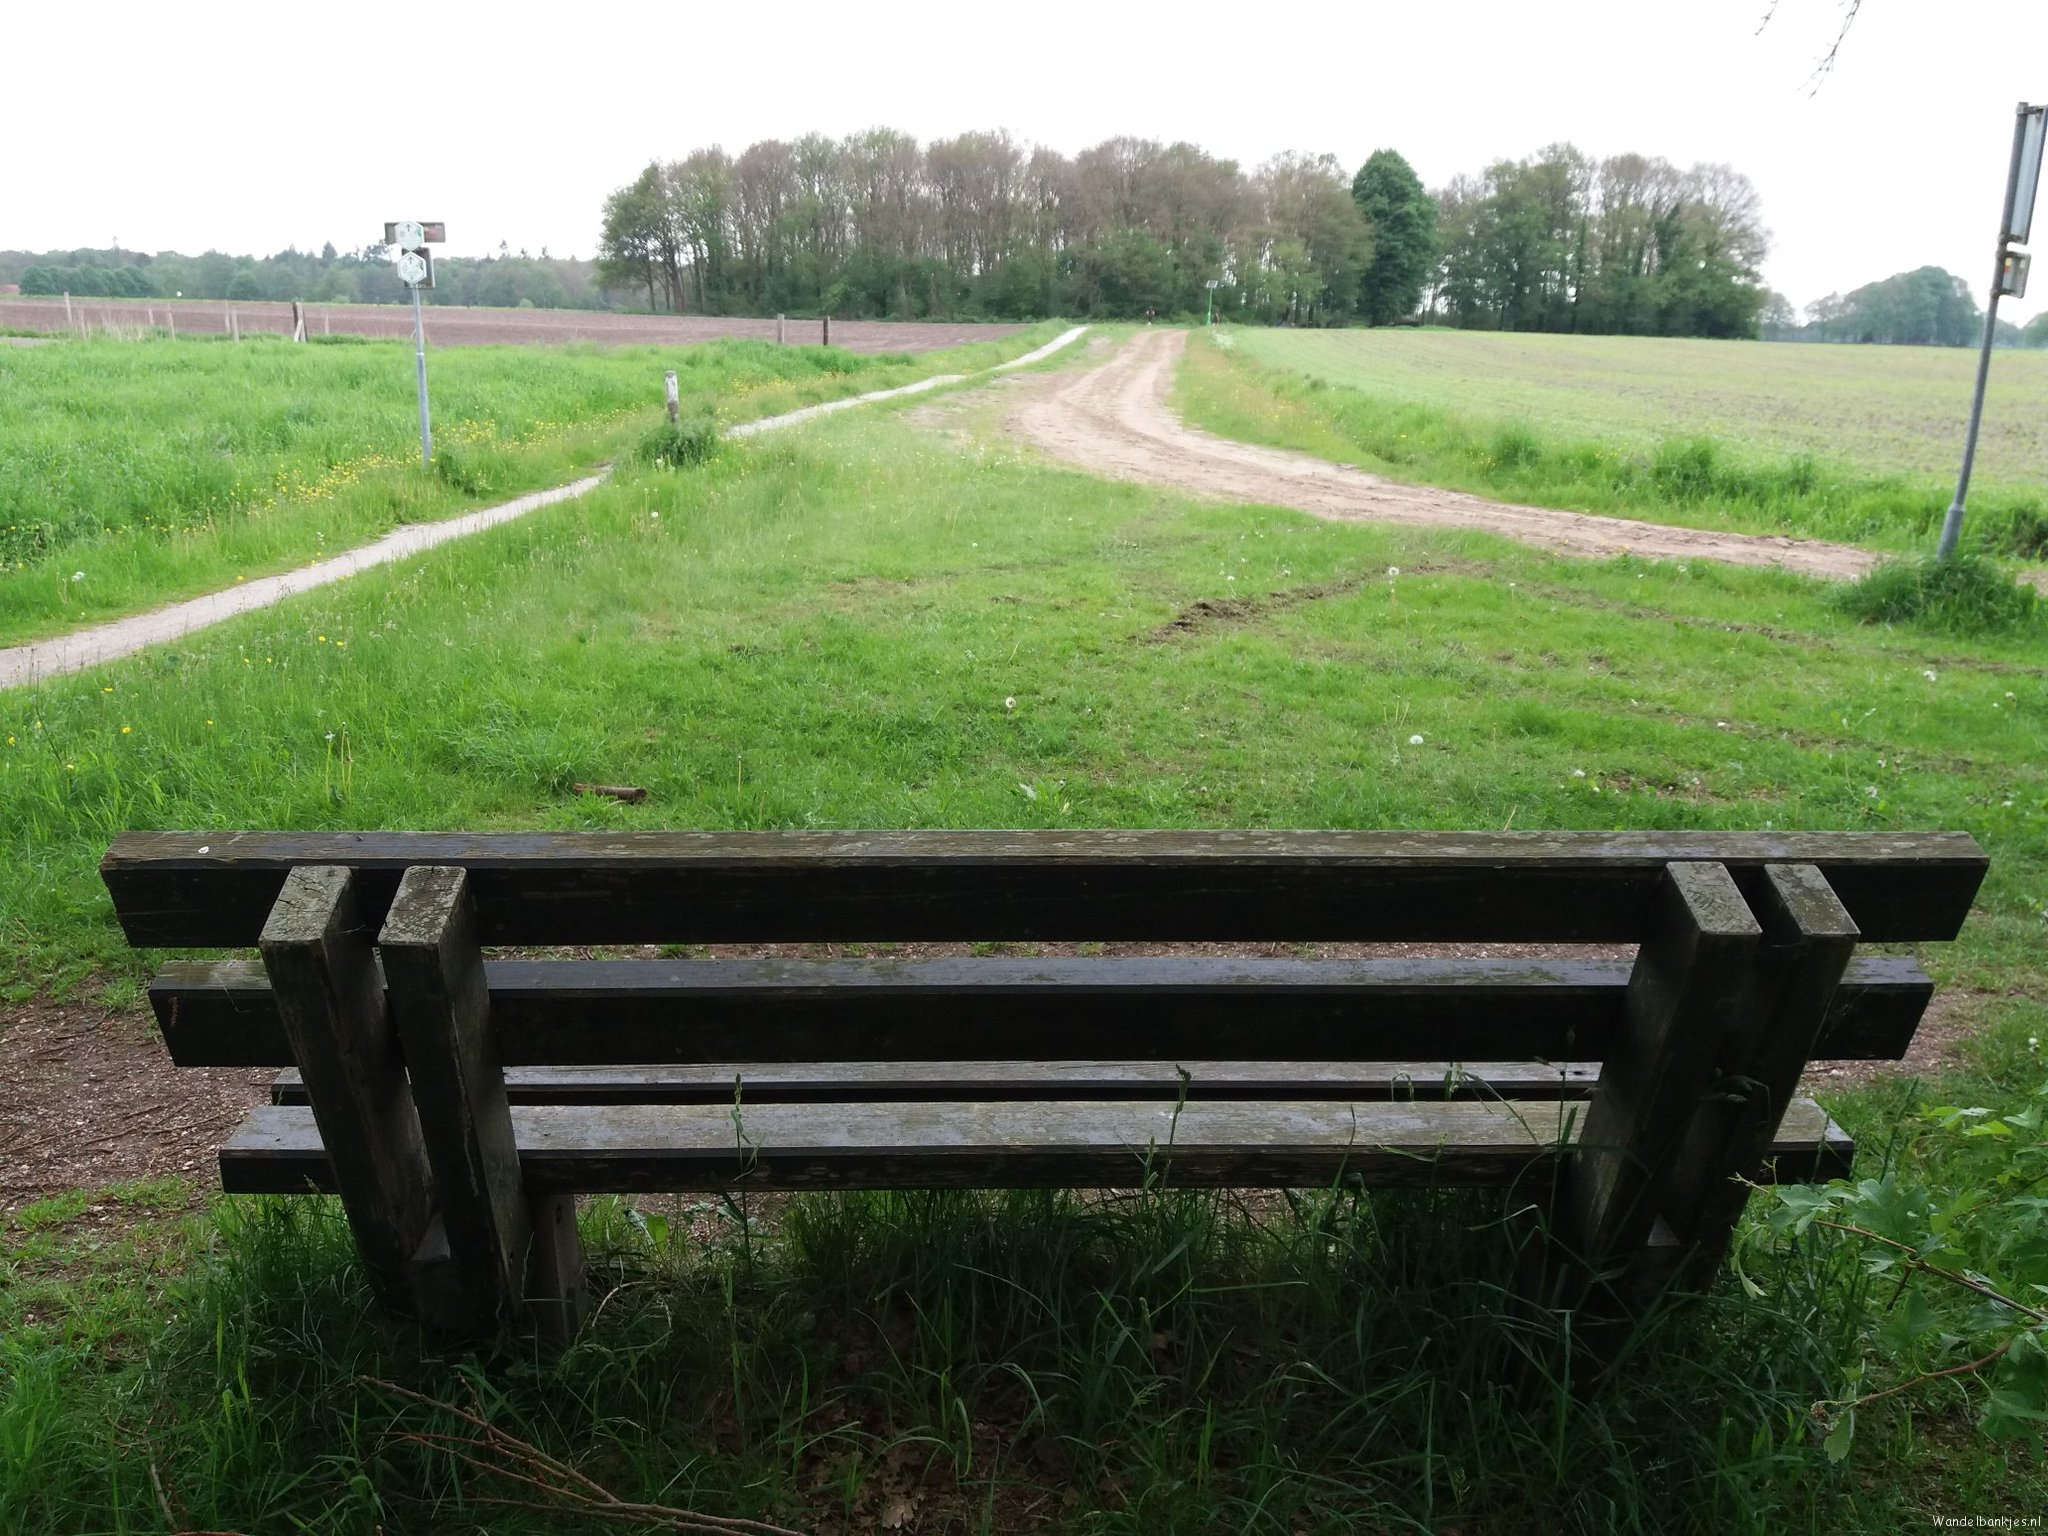 rt-walkingwithwar-walking-benches-on-the-border-of-the-provinces-groningen-and-drenthe-to-the-heather-at-north-laren-https-t-co-wwoxmxbw